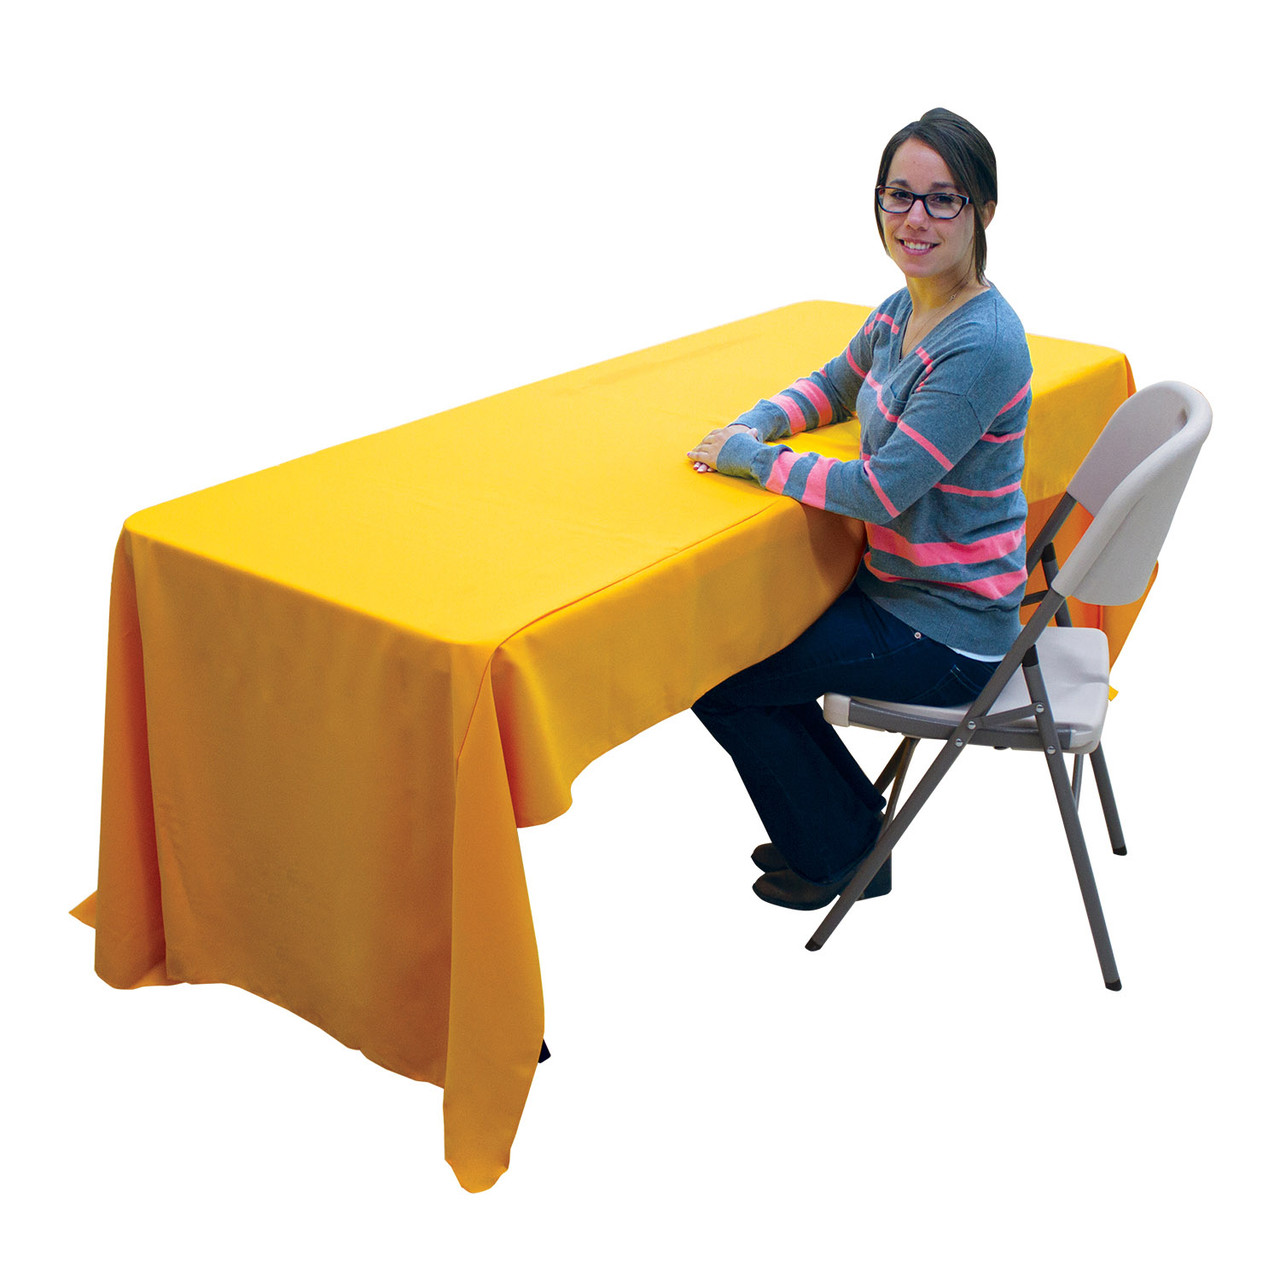 "6' Economy Table Throw (Full-Color Front Only)Product Size: 72"" W x 28"" H x 30"" D"